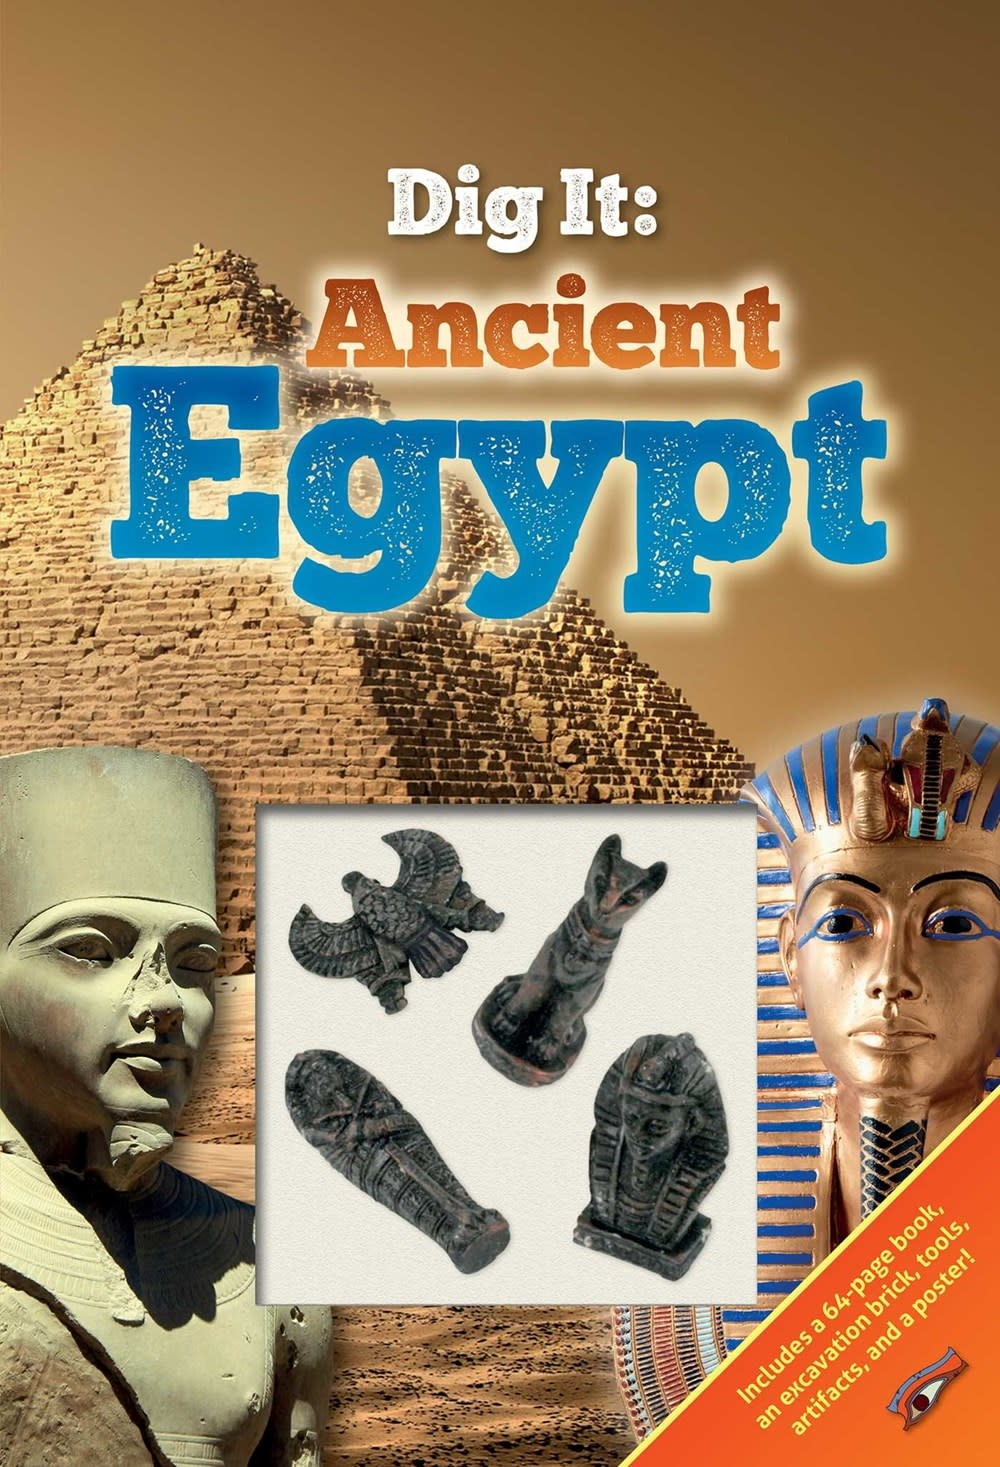 Silver Dolphin Books Dig It!: Ancient Egypt